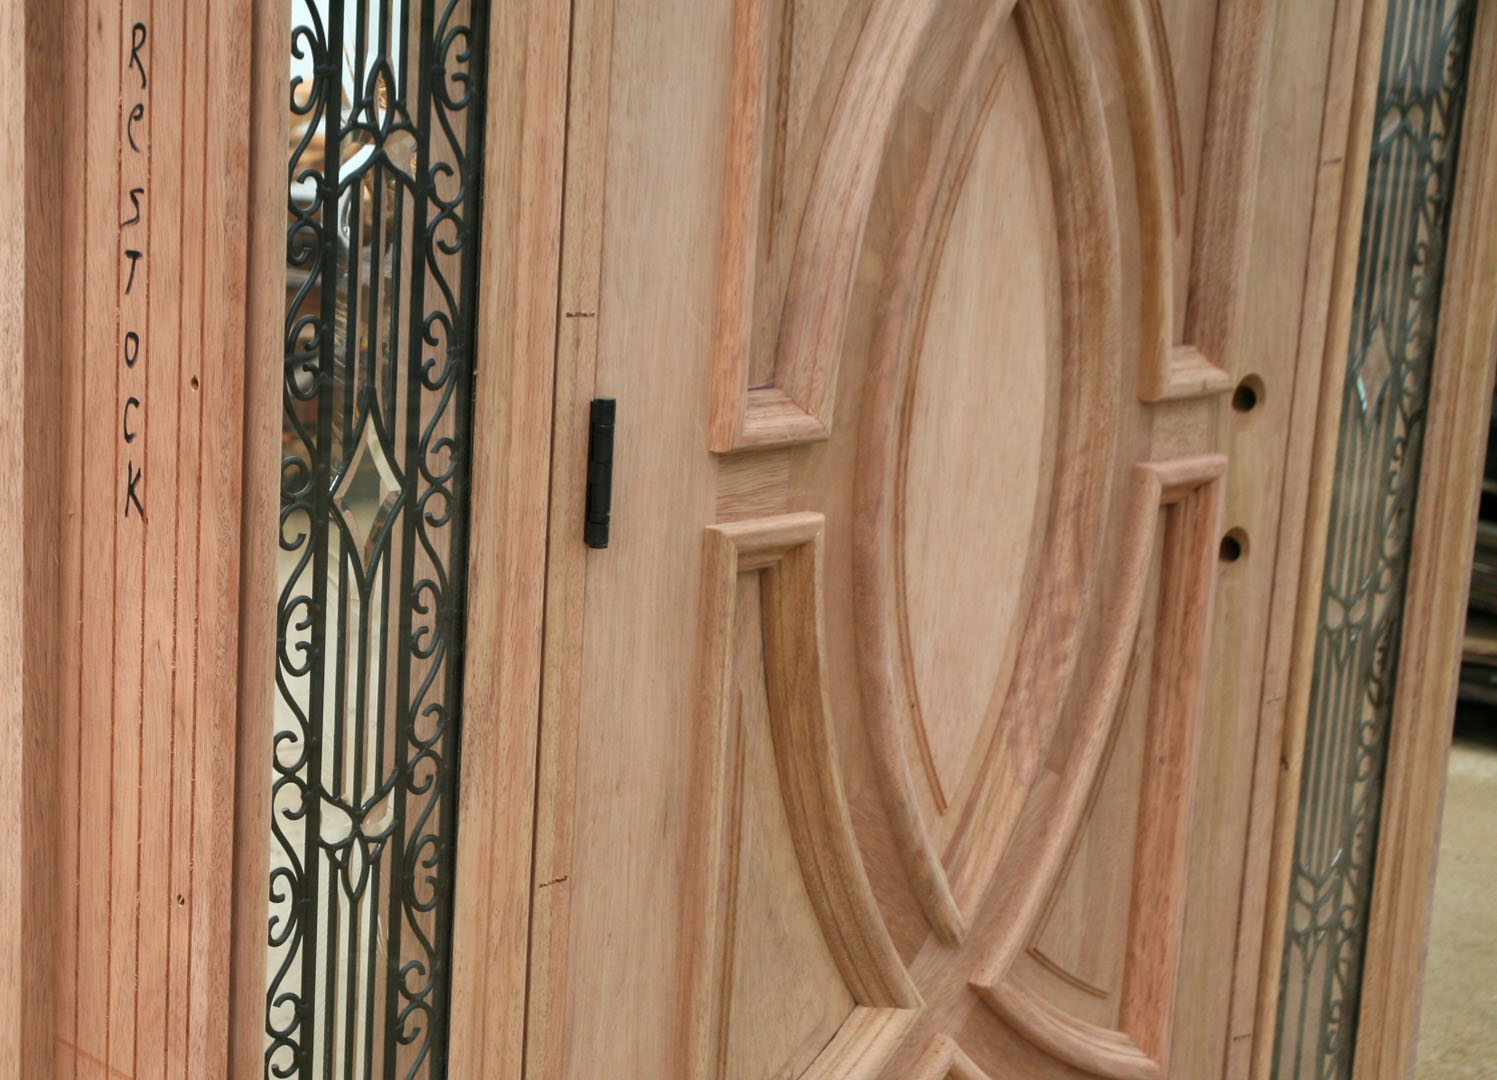 1080 #8B5A40 Exterior Wood Door And Wrought Iron Glass Olympus Series pic Metal Entry Doors With Sidelights 39211497